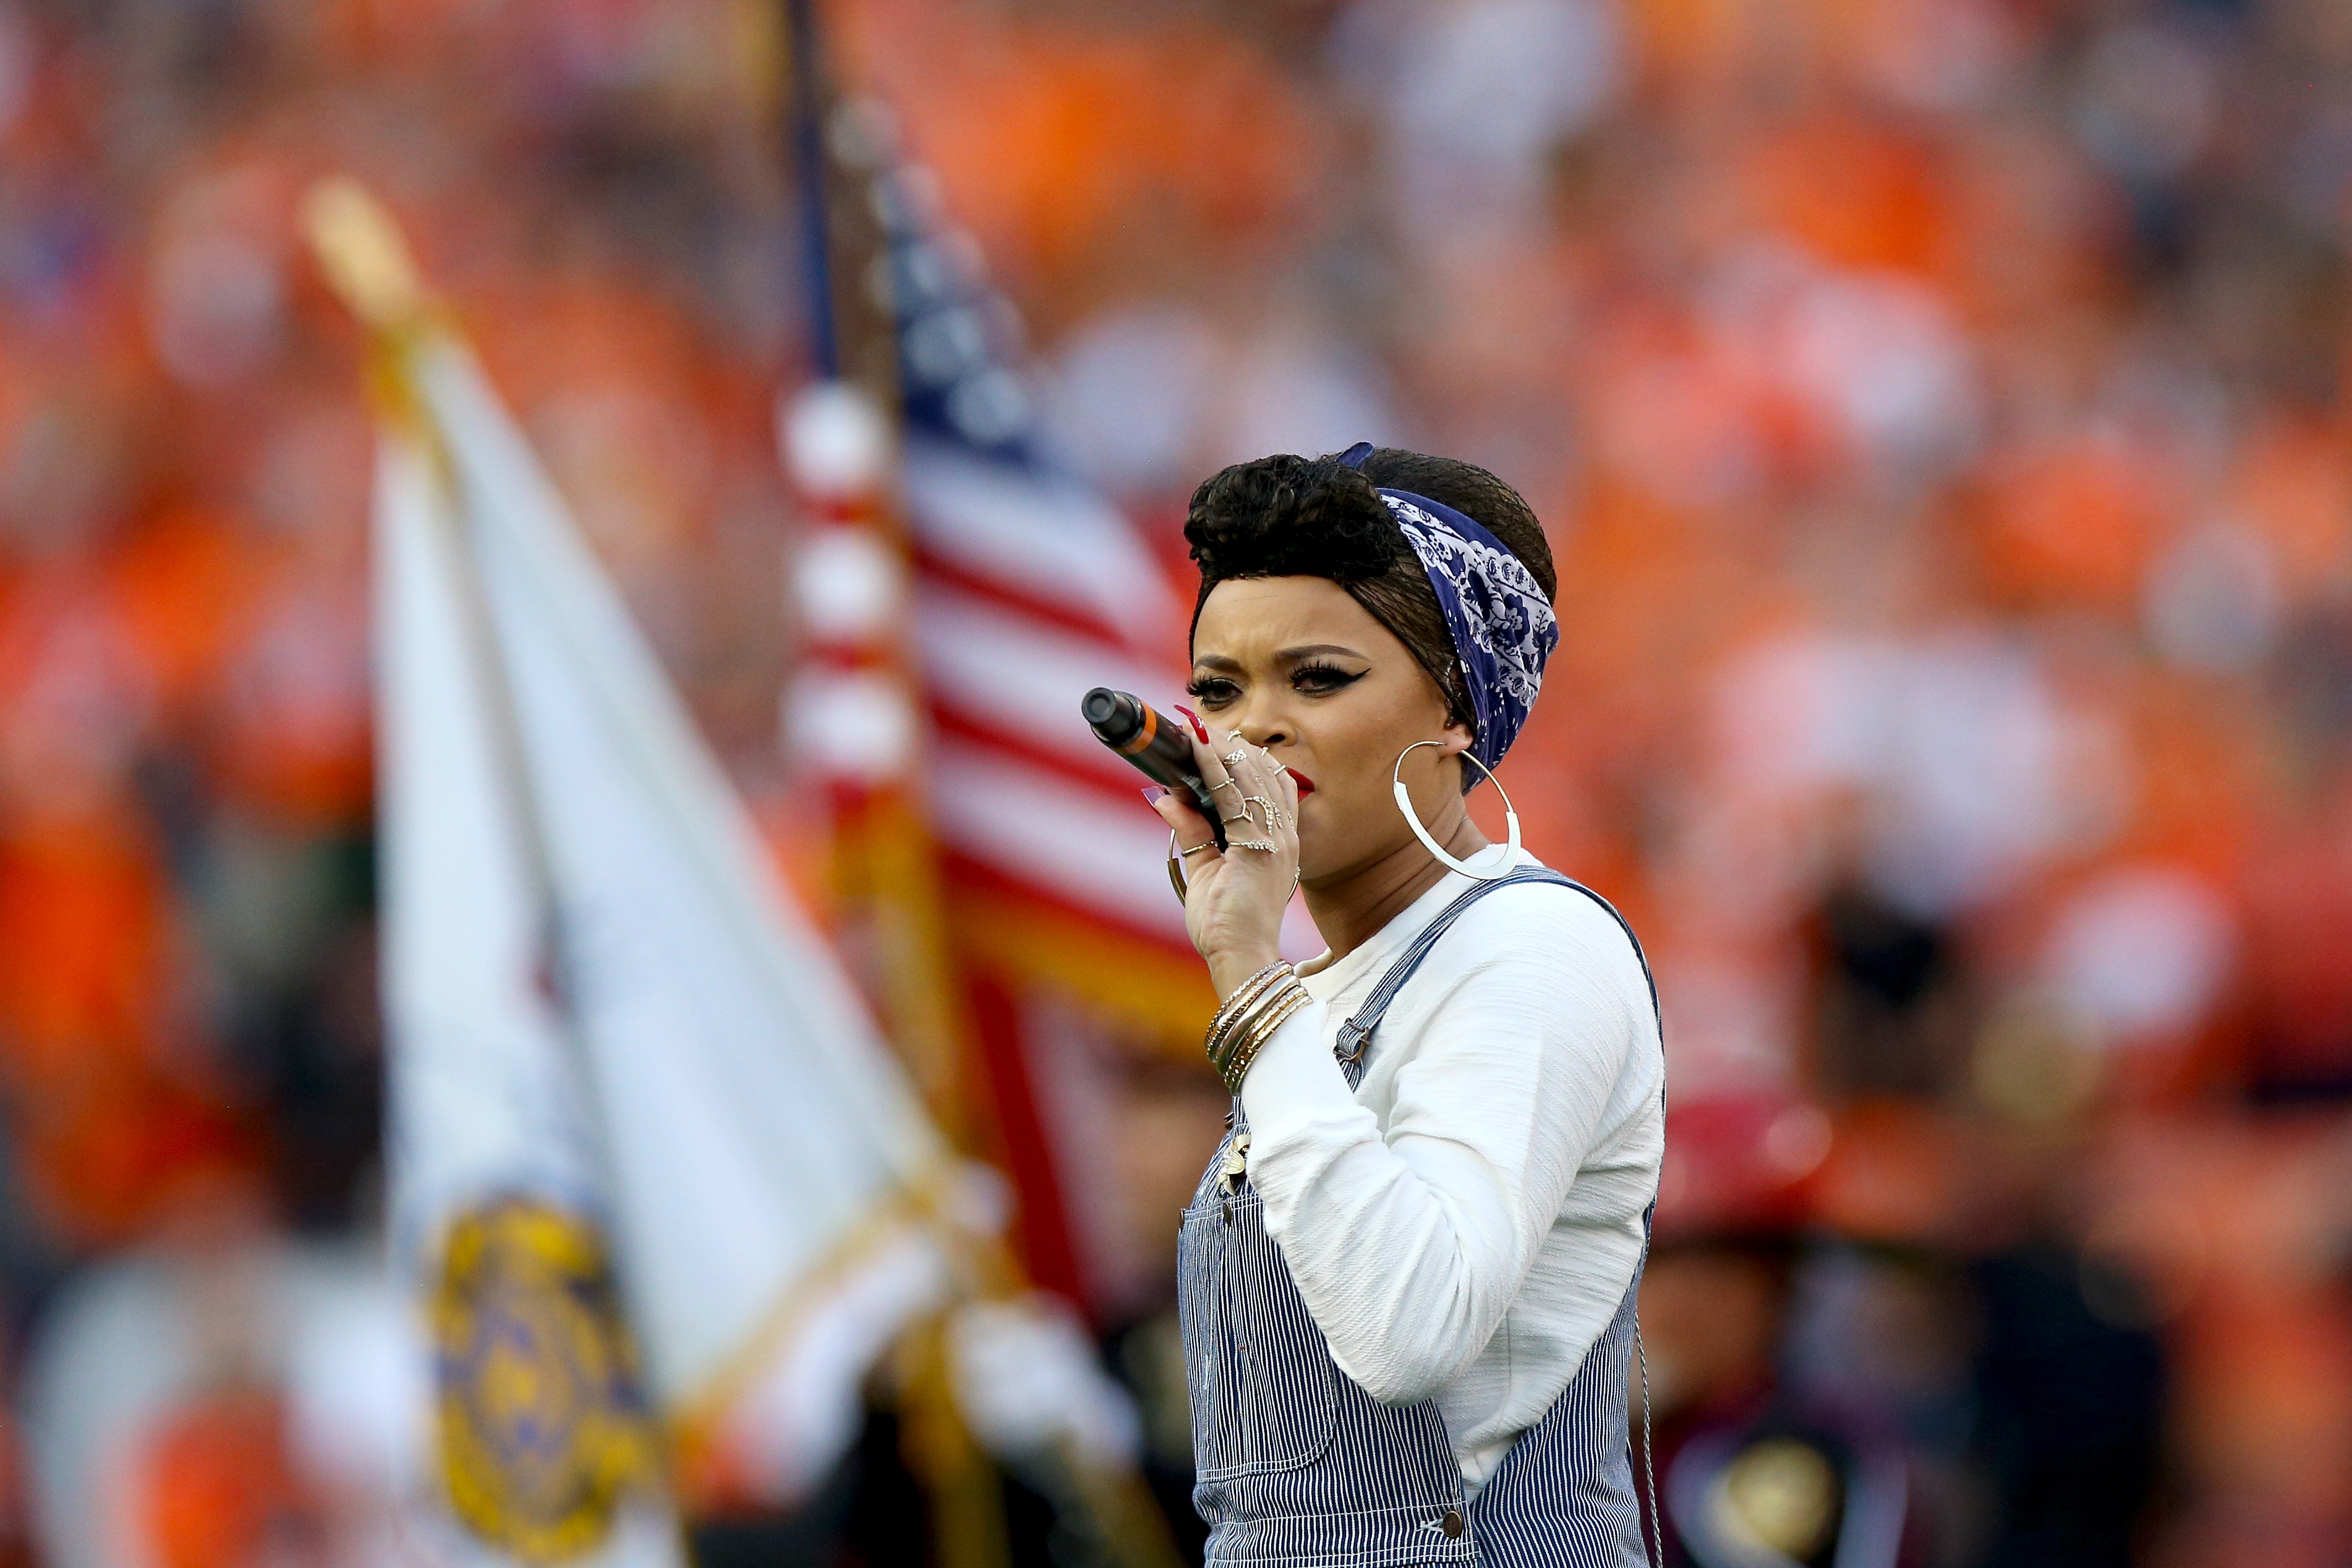 Singer Andra Day performs the National Anthem before the Denver Broncos take on the Carolina Panthers at Sports Authority Field at Mile High on Sept. 8, 2016. (credit: Justin Edmonds/Getty Images)